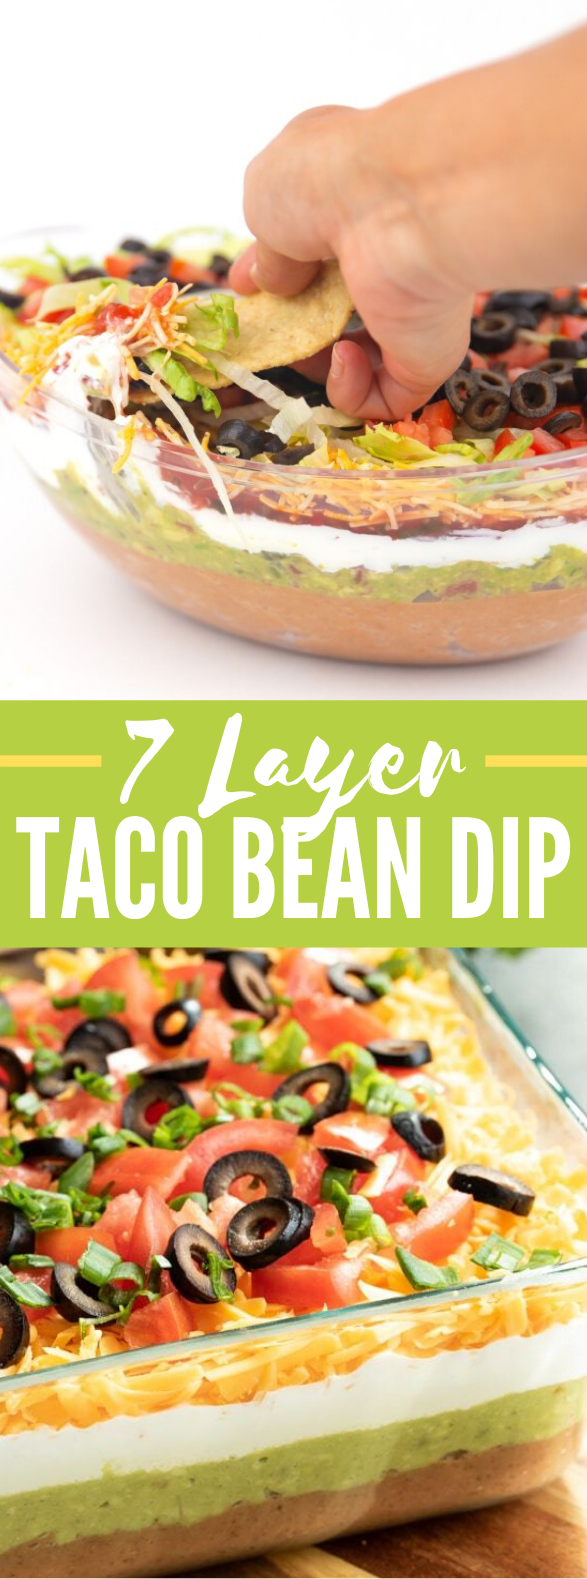 7 Layer Taco Bean Dip #appetizers #meals